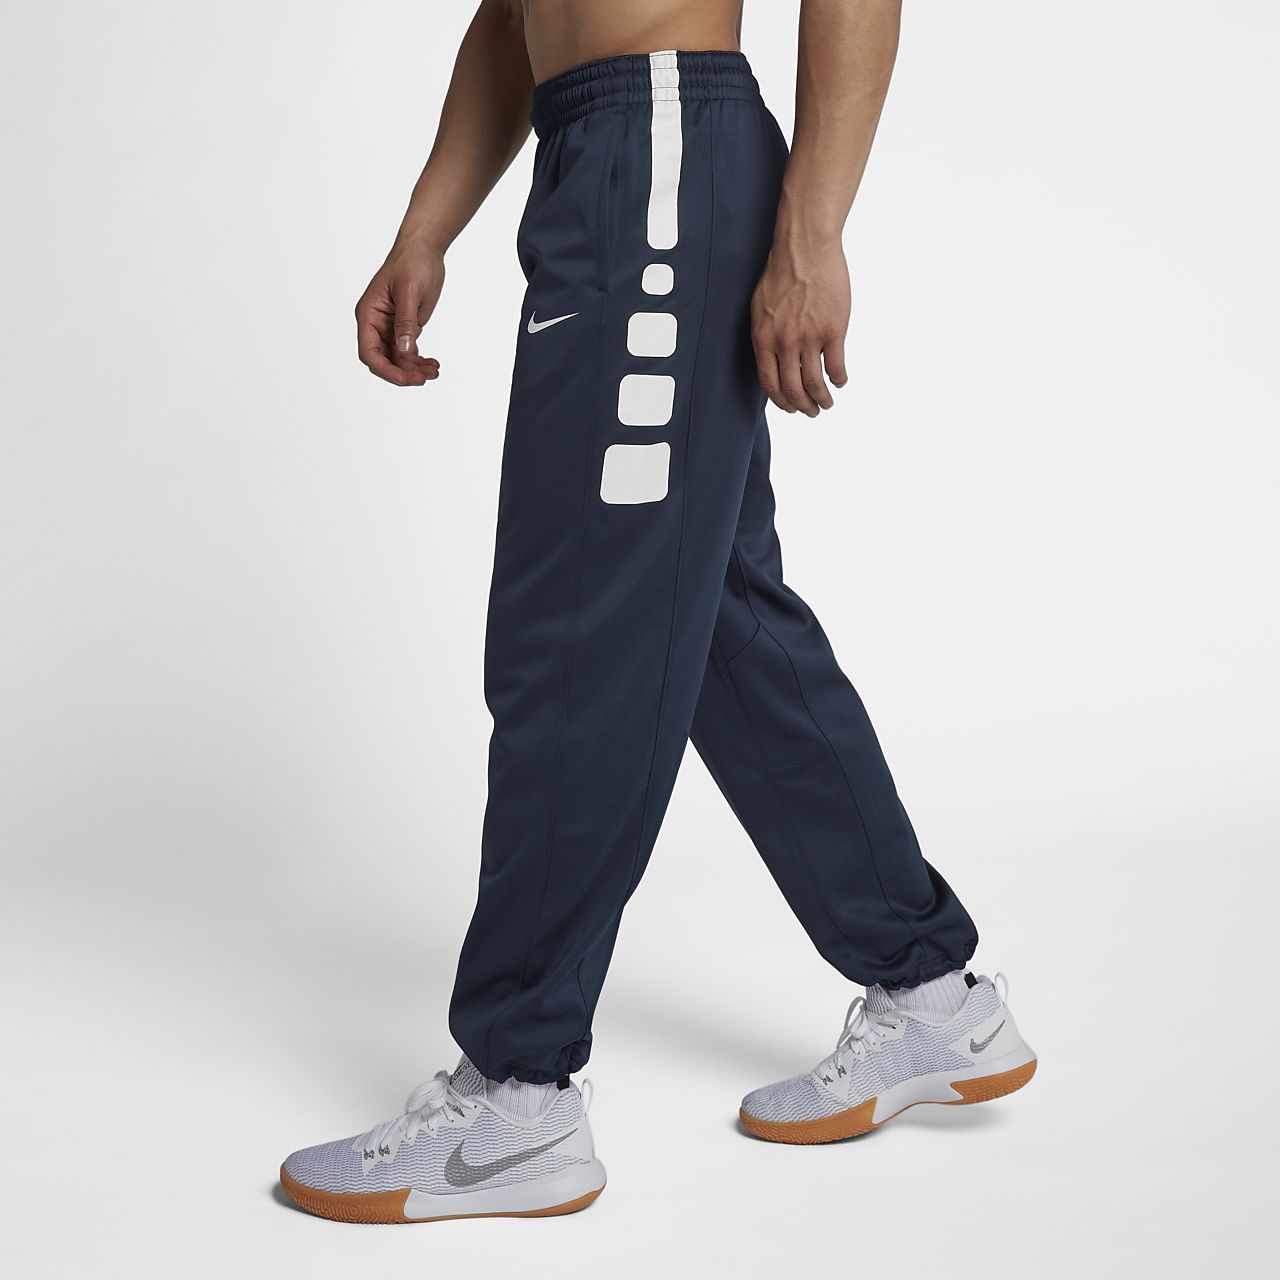 Nike Therma Elite Men's Basketball Pants